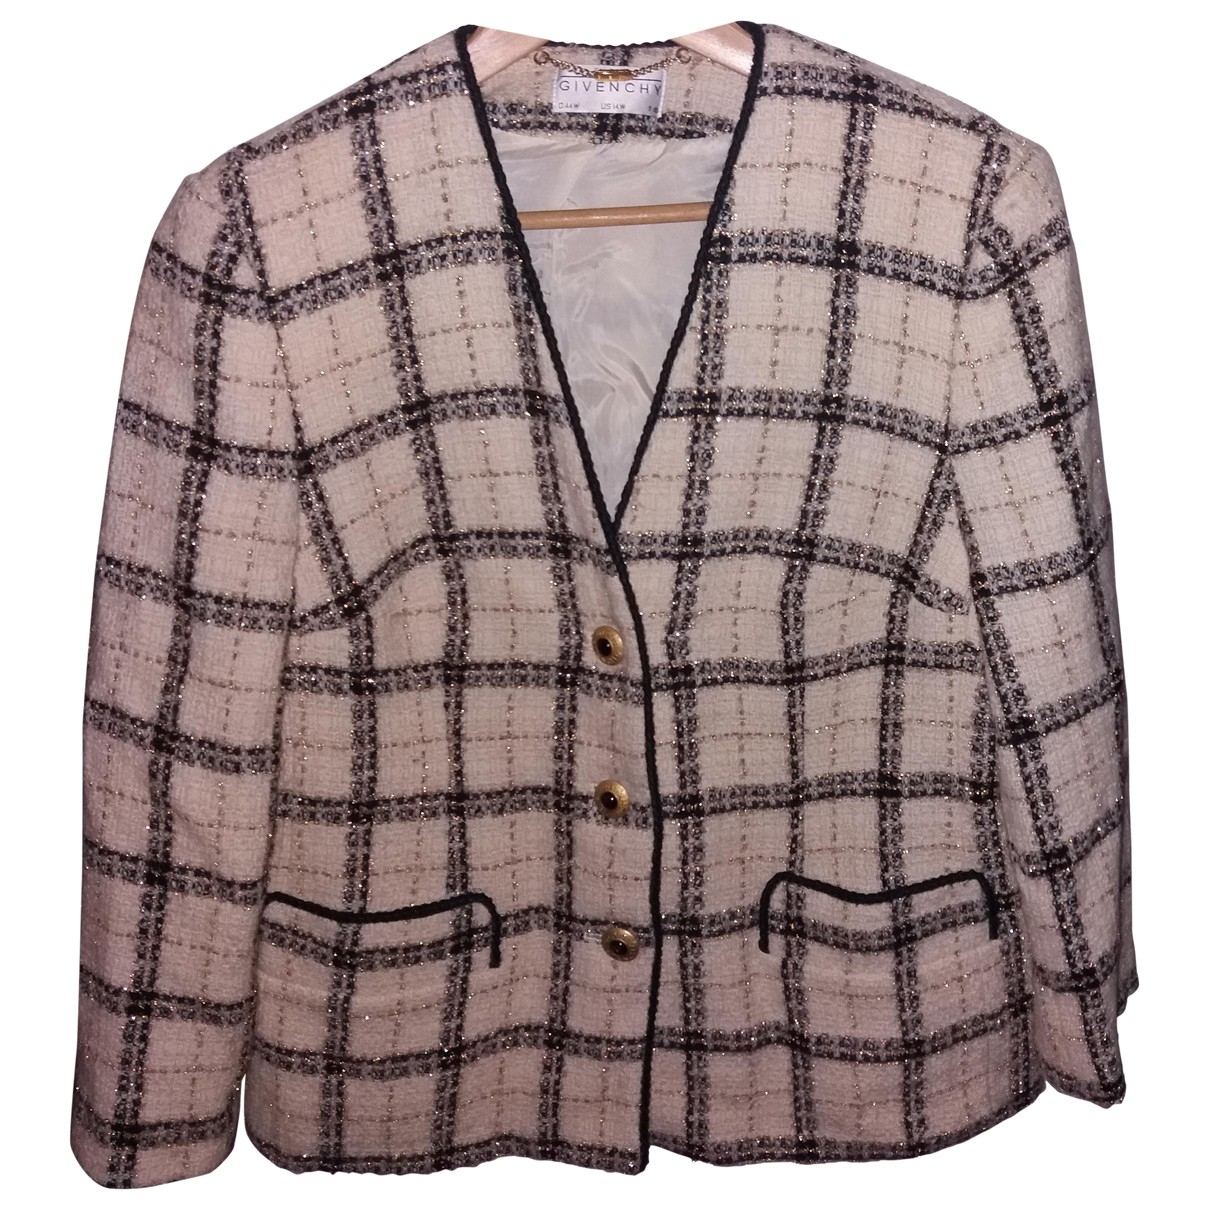 Givenchy \N Beige Wool jacket for Women 14-16 US